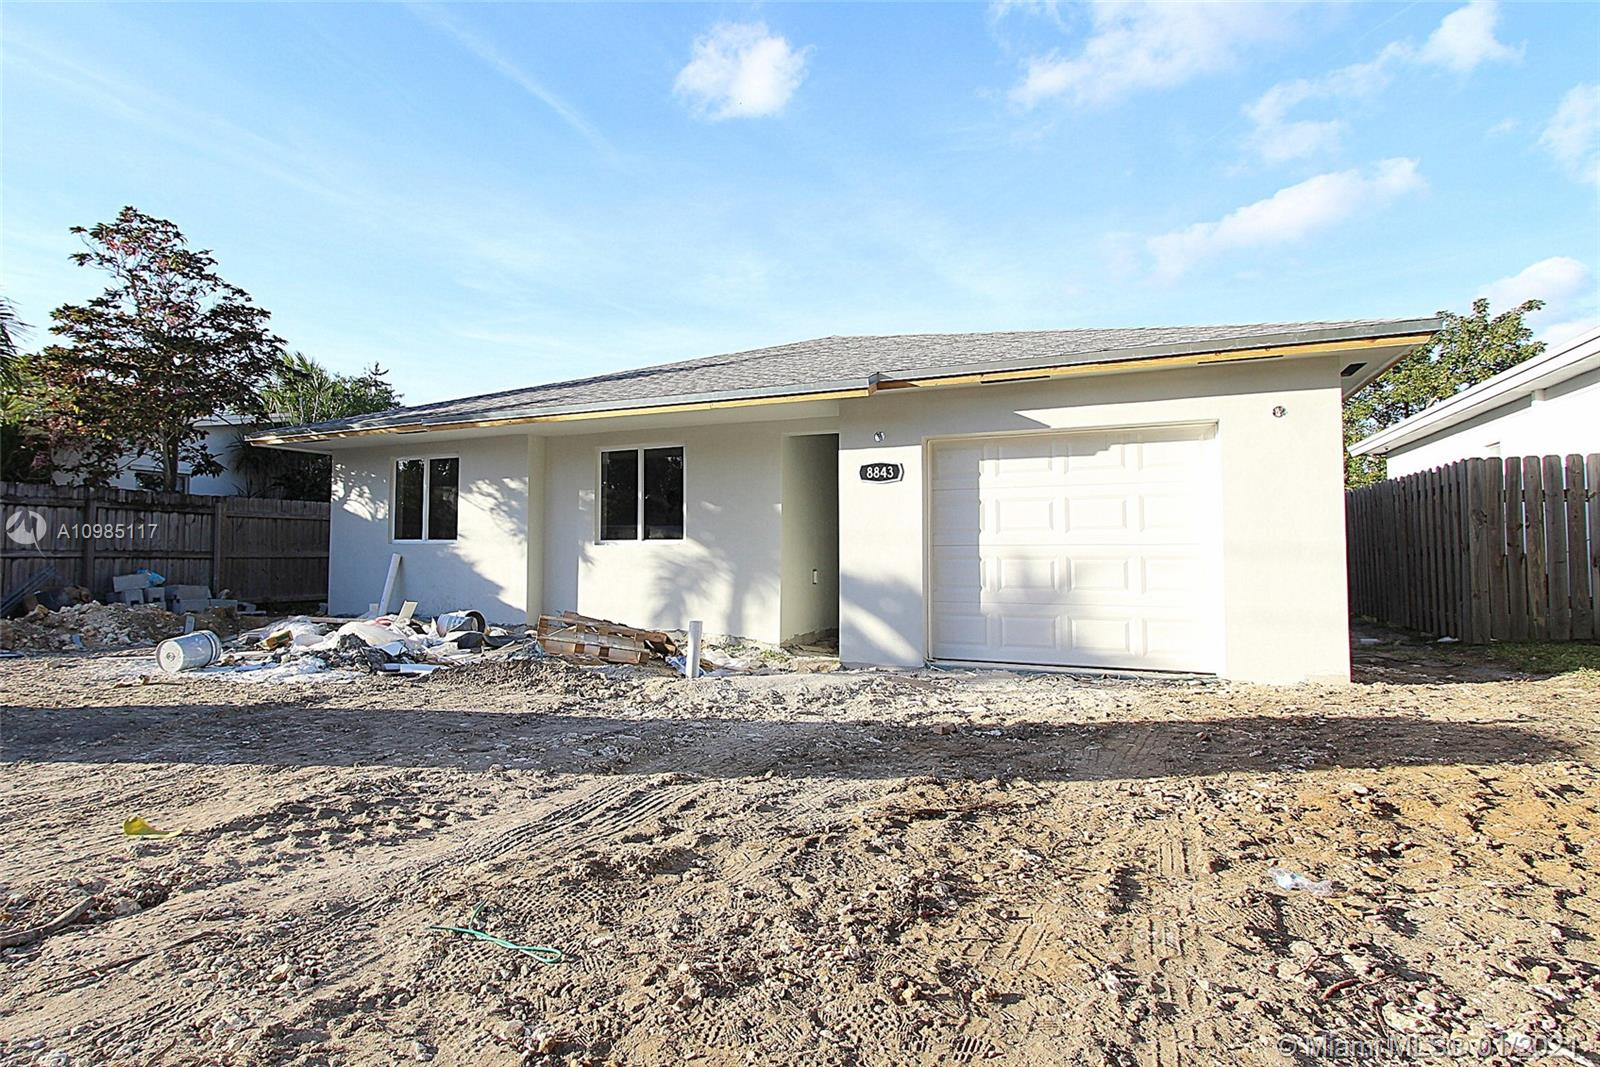 NEW CONSTRUCTION! 1,645 Total SqFt. Single-family home features Porcelain wood like tile throughout the house, kitchen with wood cabinetry and granite countertops, cook-top, wall microwave/oven combination, recirculating hood, dishwasher. 7 feet long kitchen island. The home will be completed and ready to close by 02/21/2021